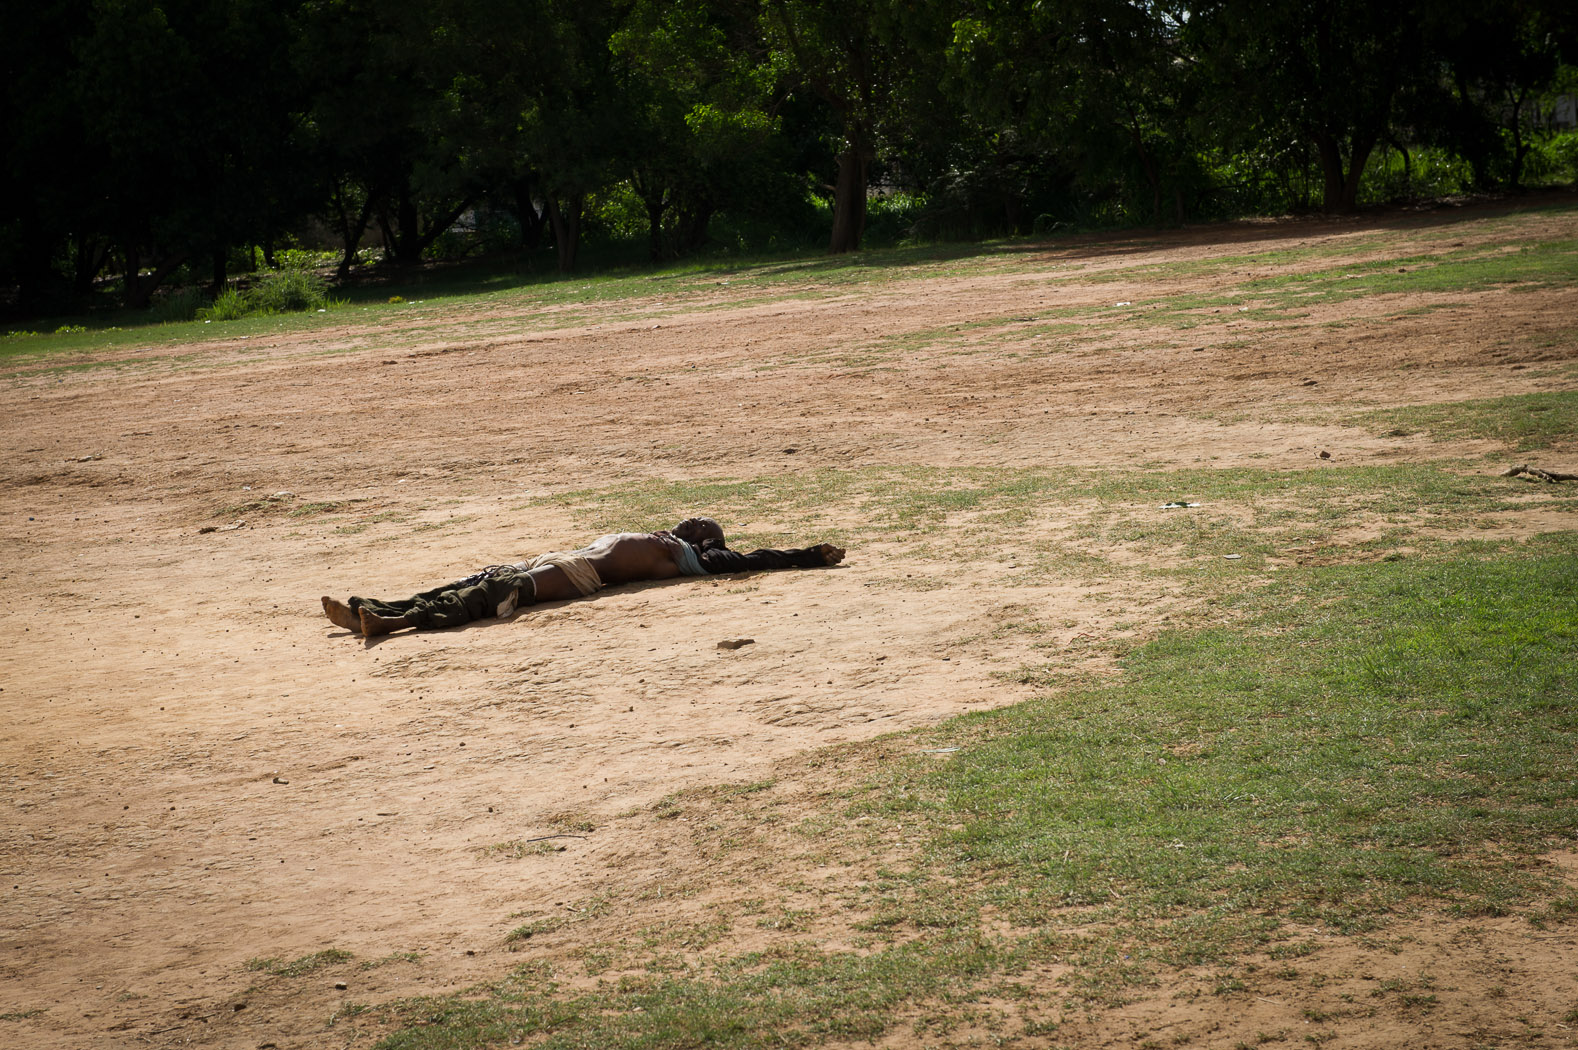 A man that the army claims was involved in fighting between the DRC armed forces lies dead in a field next to the Bel Air cemetery in Lubumbashi, killed in clashes between the armed forces and a group of armed men calling for secession of Katanga province.